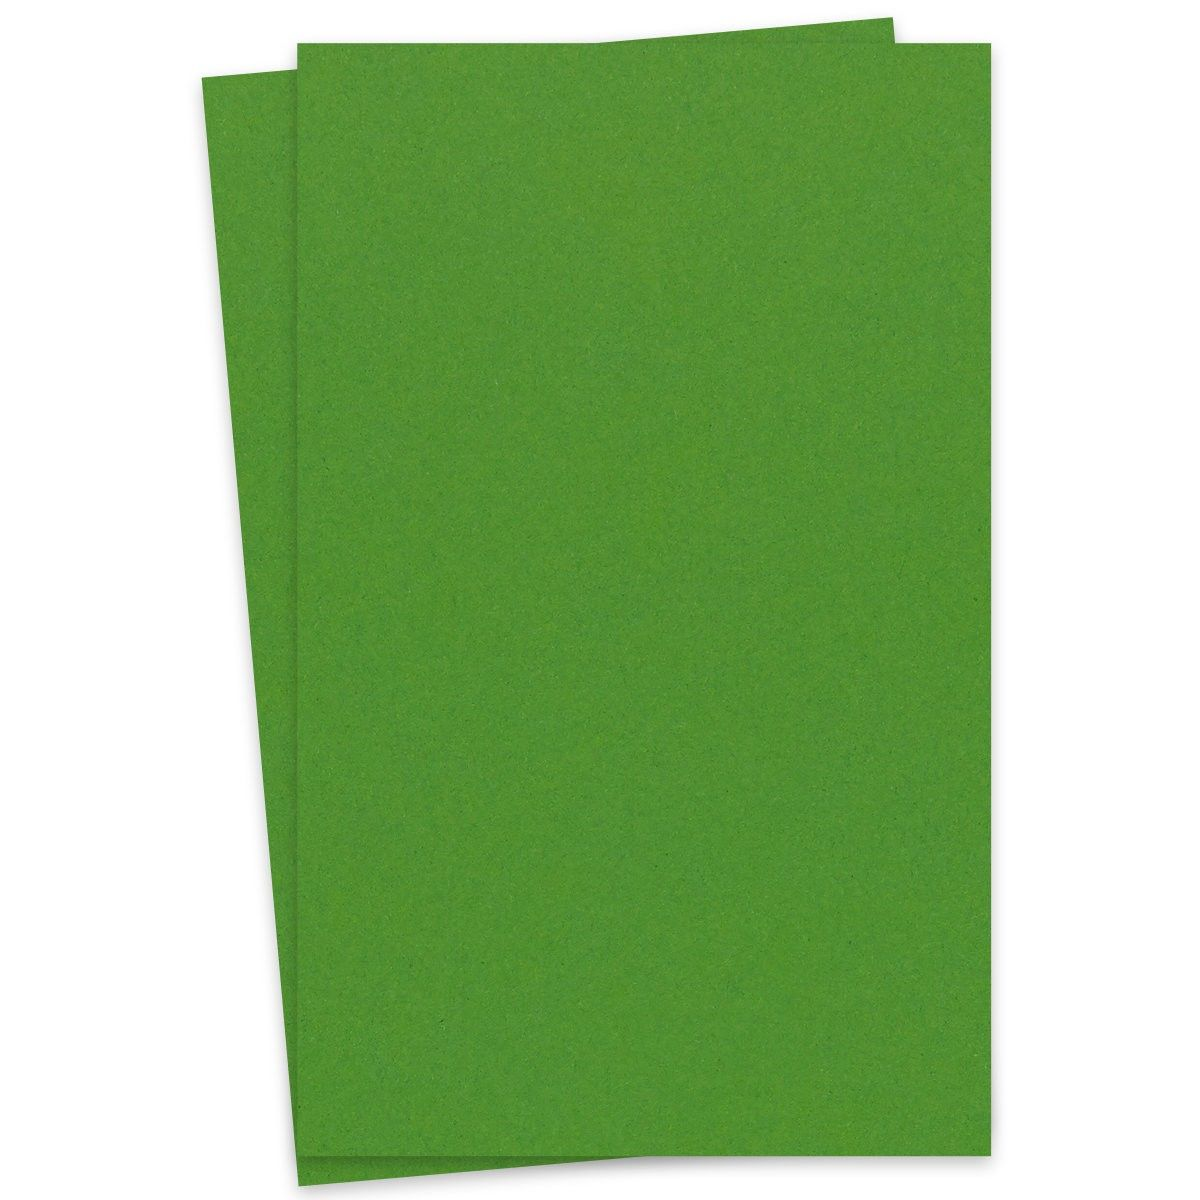 extract  cactus 11x17 ledger size cardstock paper 380